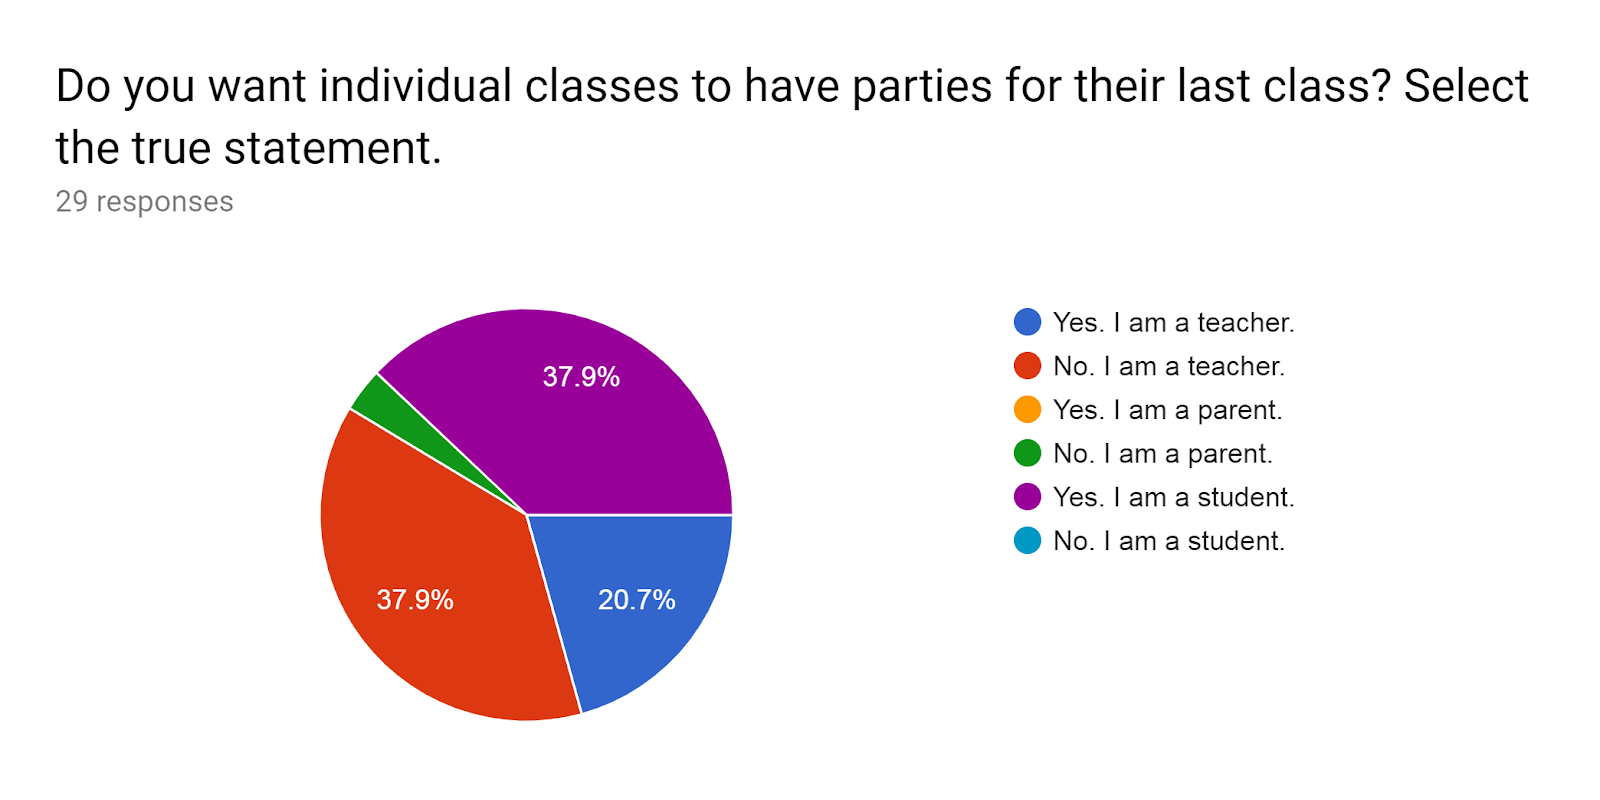 Forms response chart. Question title: Do you want individual classes to have parties for their last class? Select the true statement.. Number of responses: 29 responses.